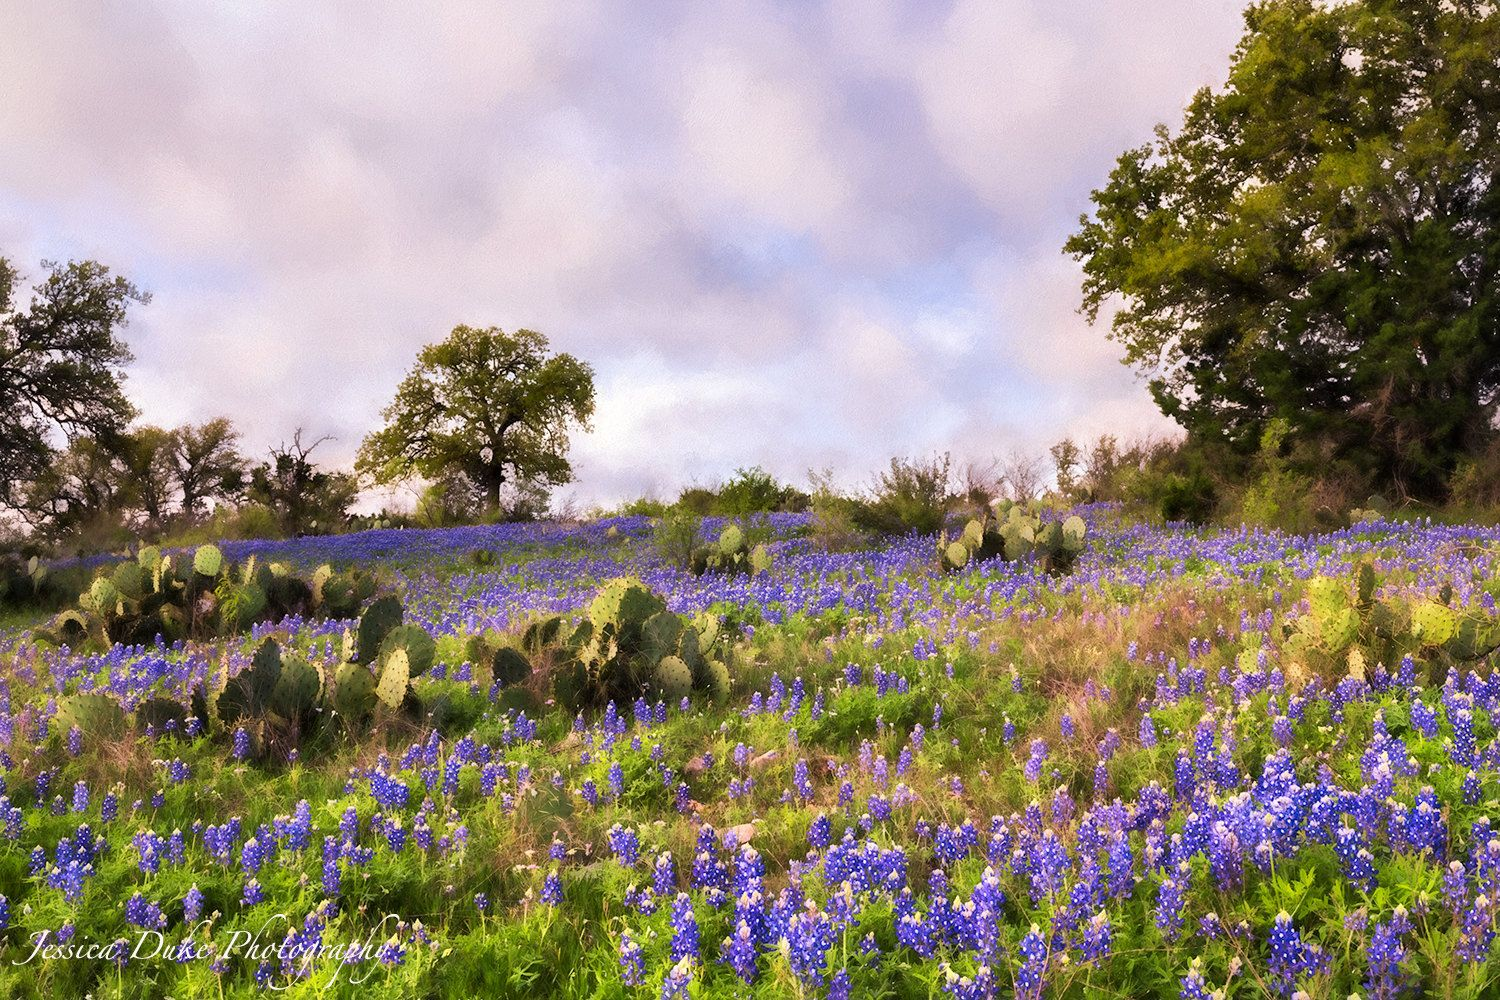 Texas Bluebonnets Landscape Photography Flower Photography Texas Landscape Photography Nature Photography Beautiful Photography Nature Landscape Photography